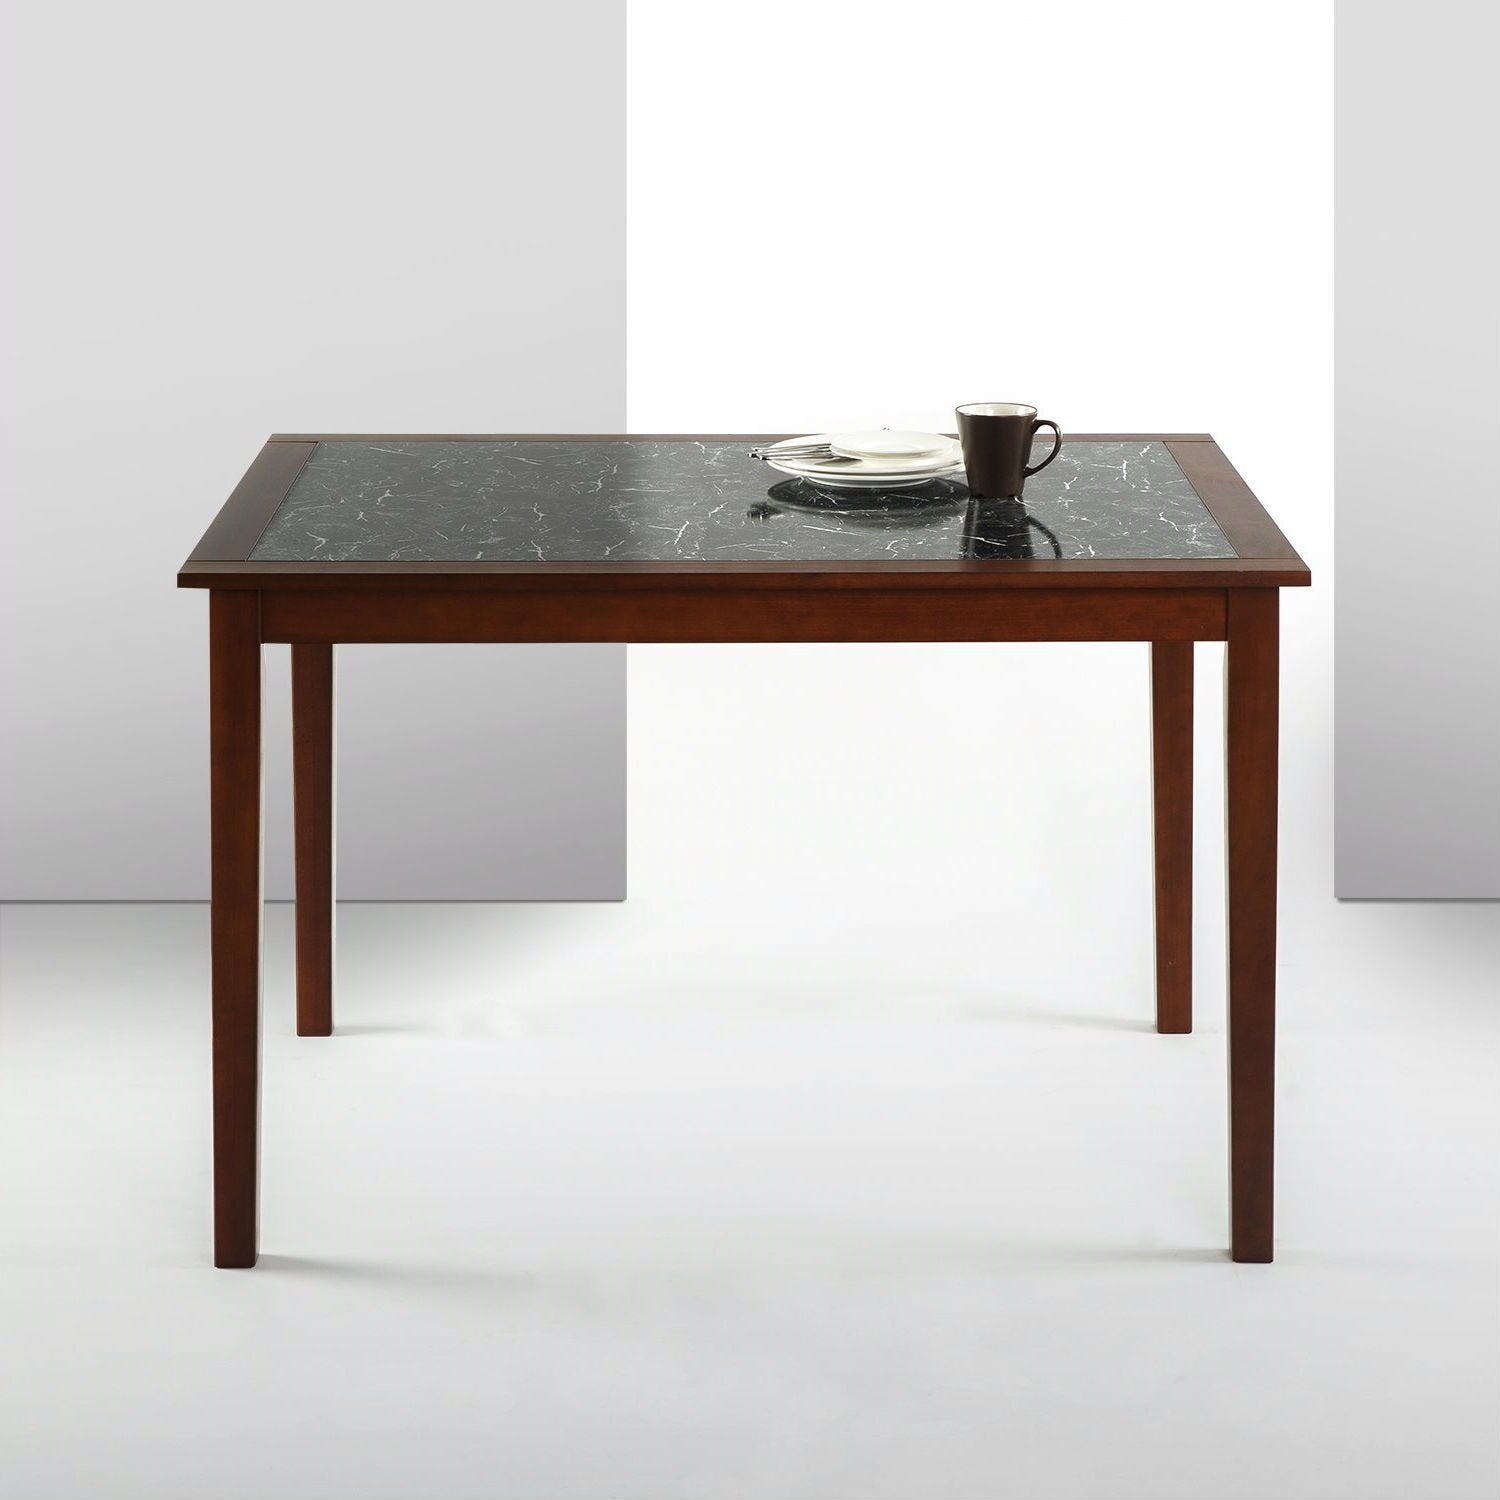 Rectangular 48 x 36 inch Brown Wood Dining Table with Faux Marble Top.